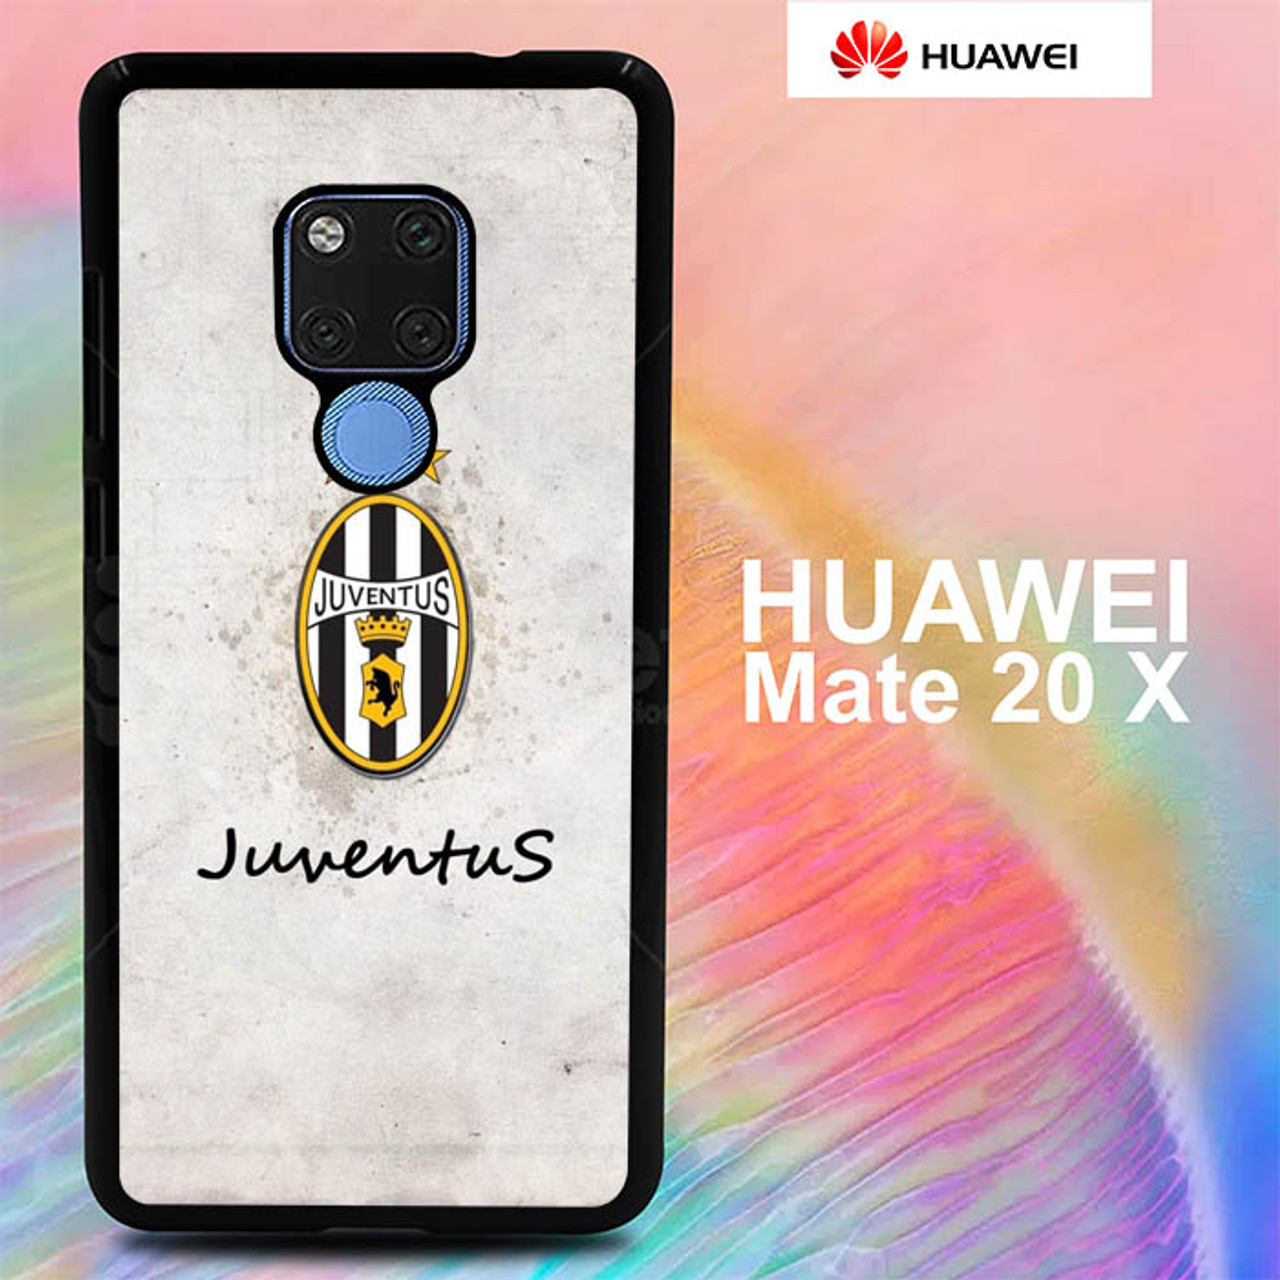 juventus wallpaper o7633 huawei mate 20 x case flazzy store flazzy store